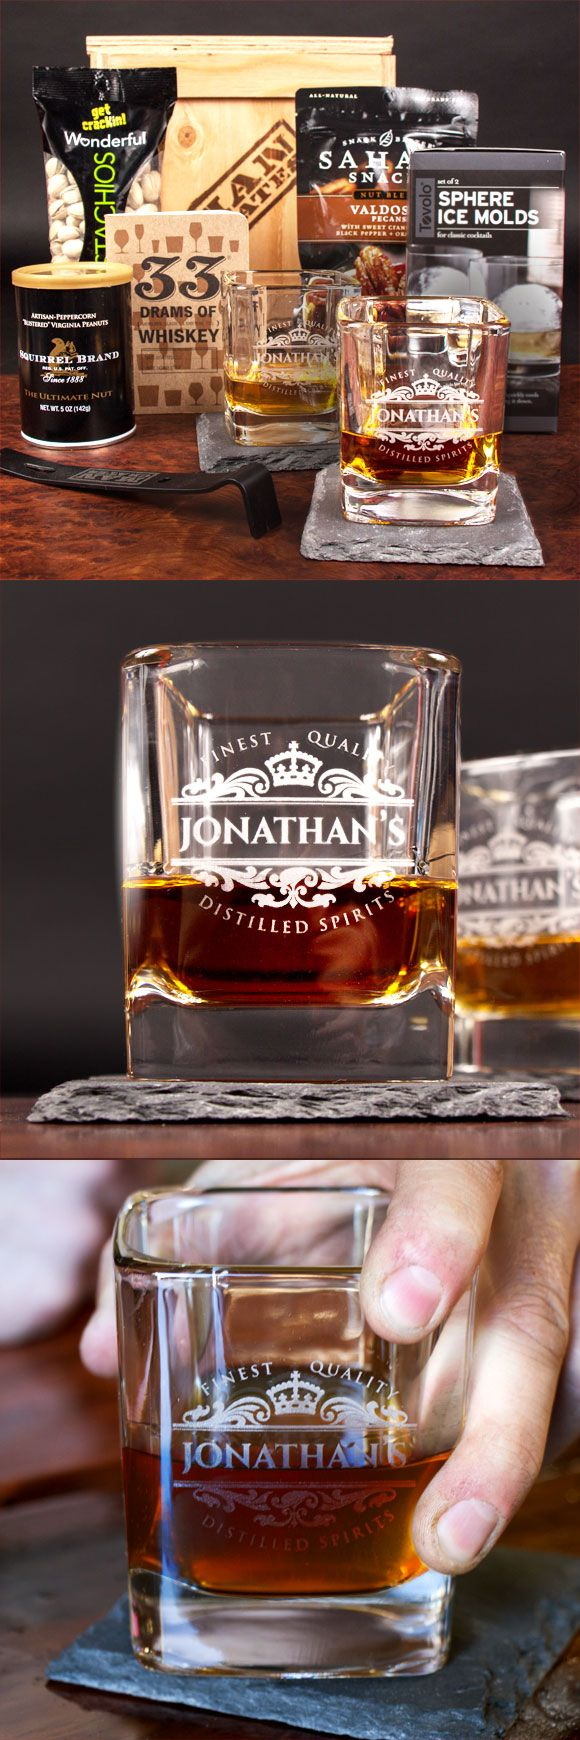 my dad will absolutely love sipping whiskey from a personalized